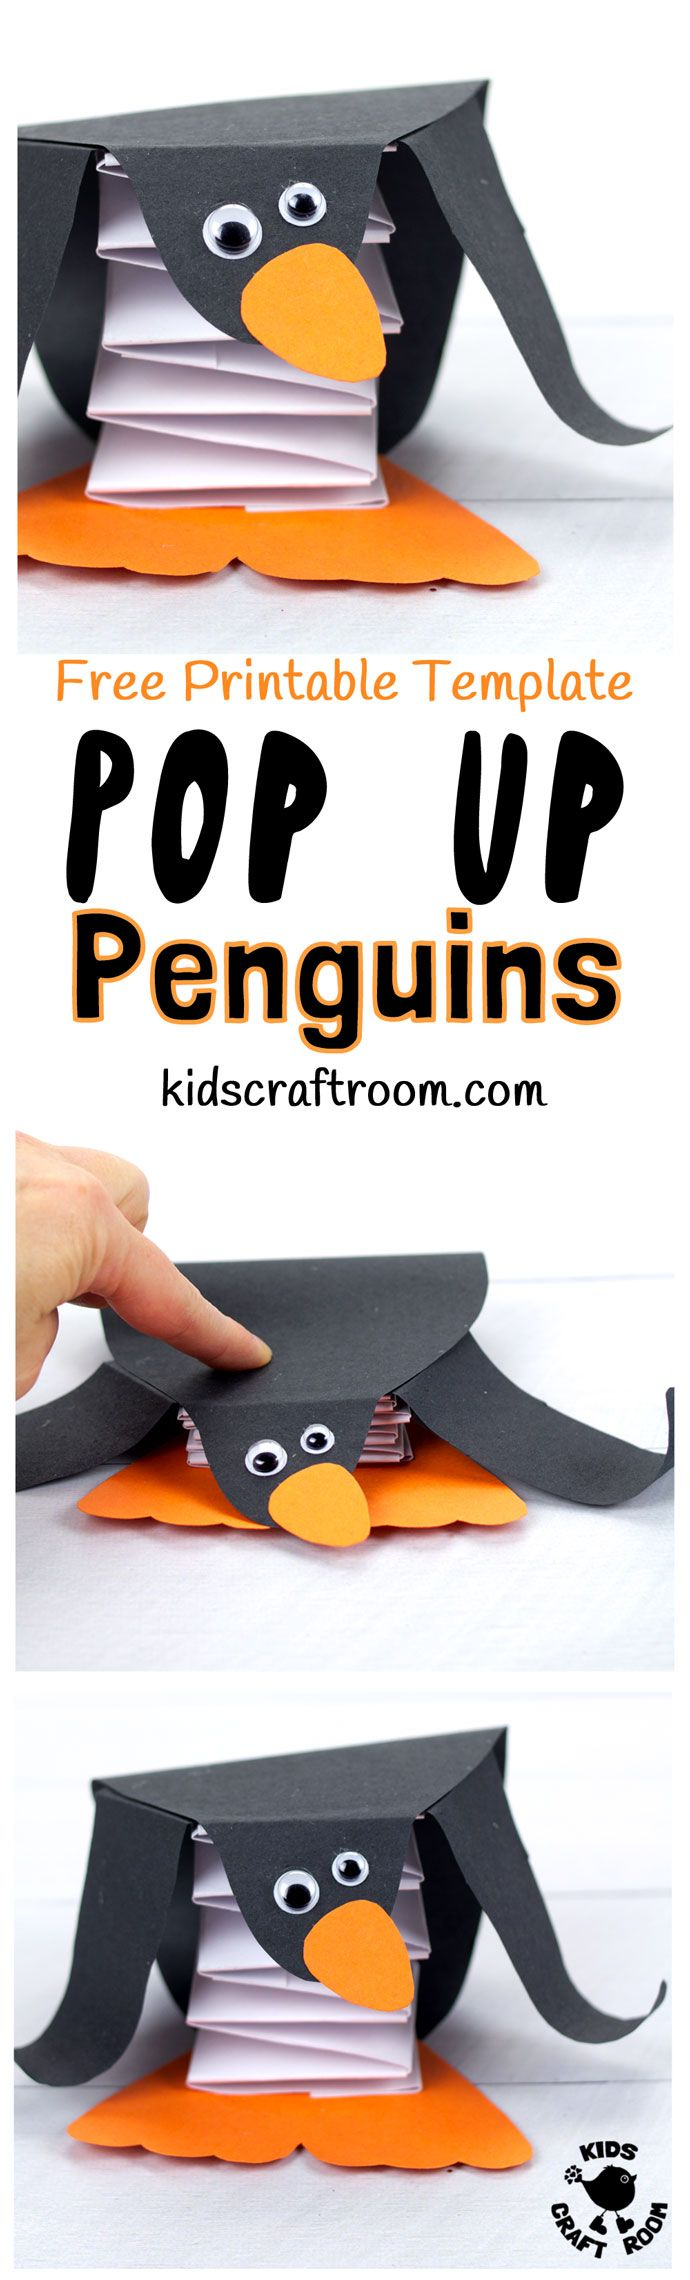 POP UP PENGUIN CRAFT - Use our free printable template to make the cutest DIY penguin toys that actually bounce up and down! Push the homemade penguins down and they pop right back up and wobble adorably! They are the cheekiest and most fun penguins around!